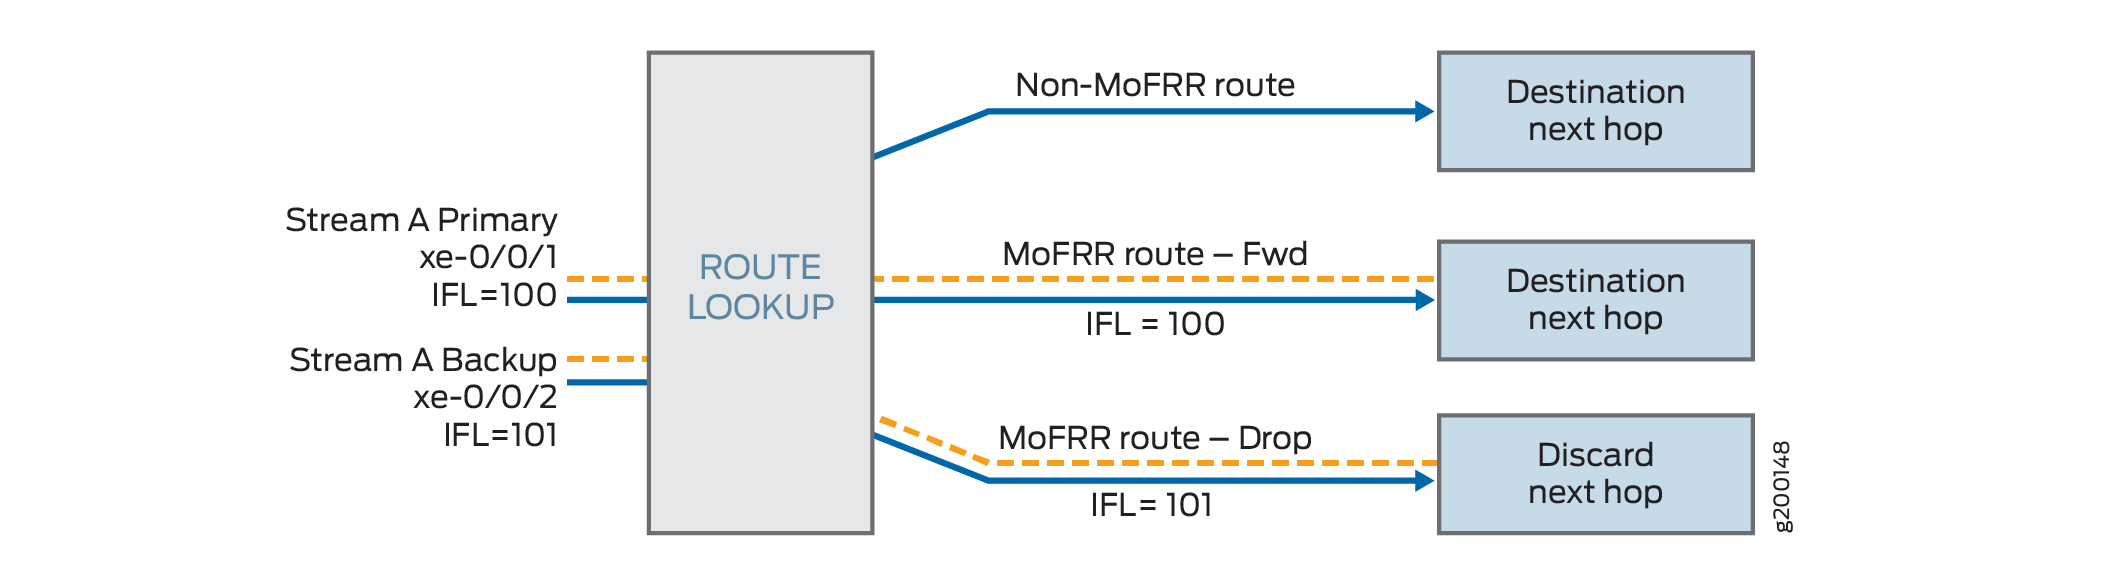 MoFRR IP Route Handling in the Packet Forwarding Engine on Switches